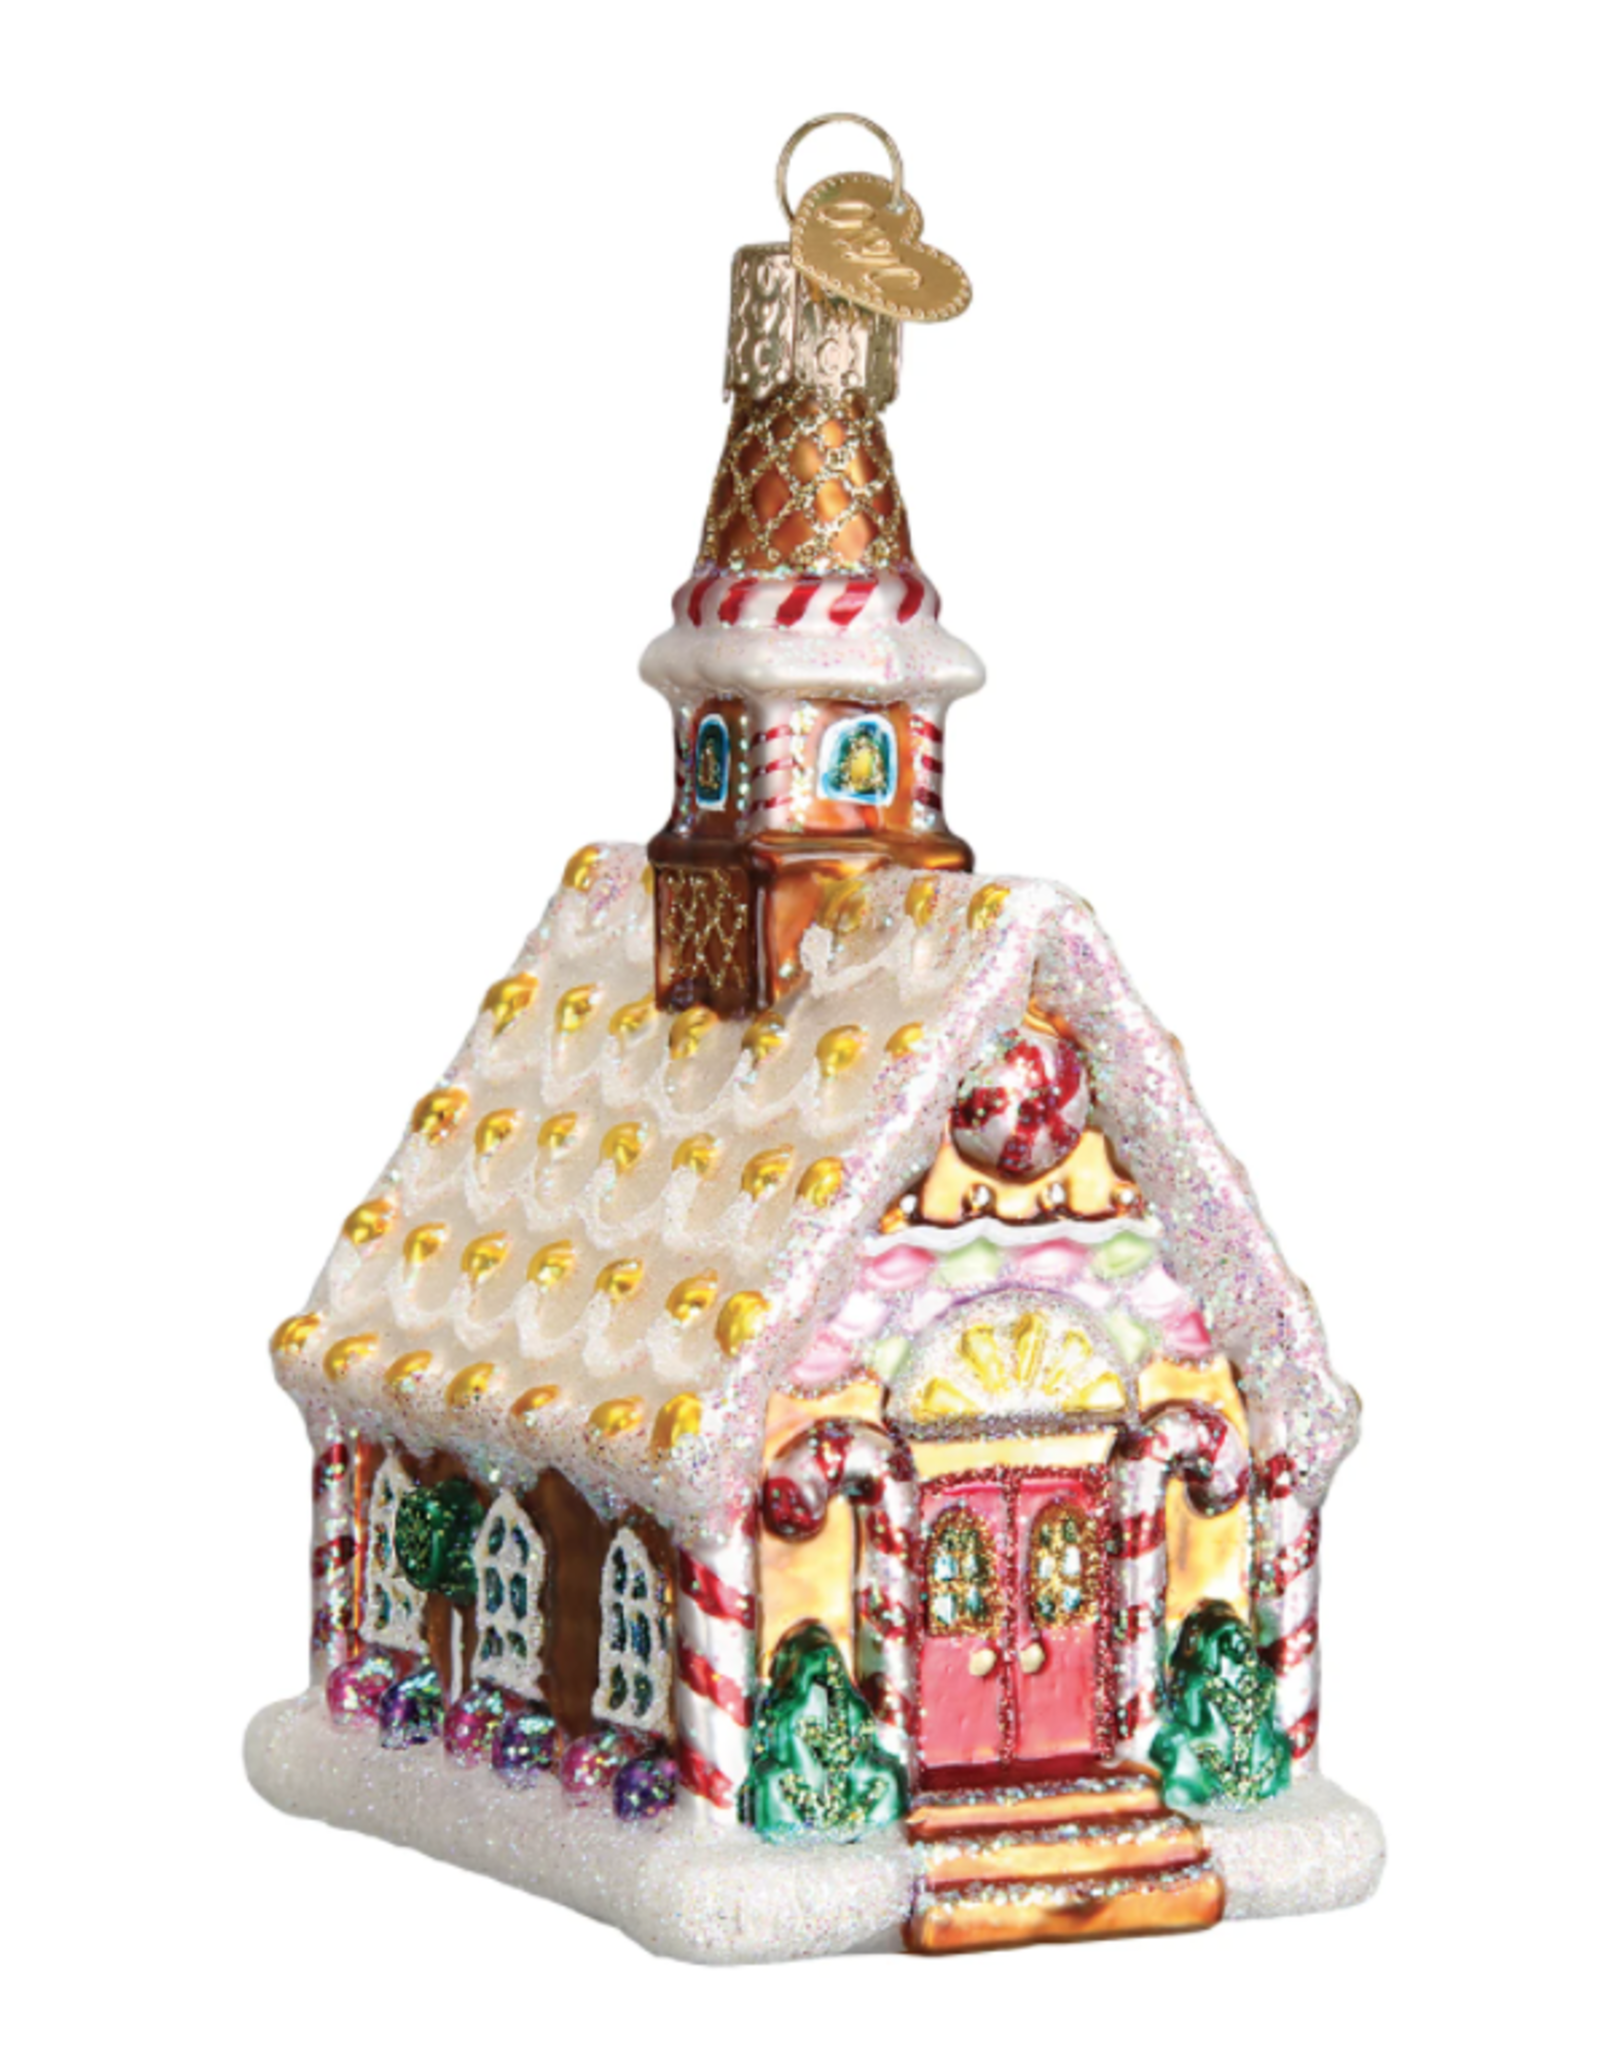 Gingerbread Church Ornament